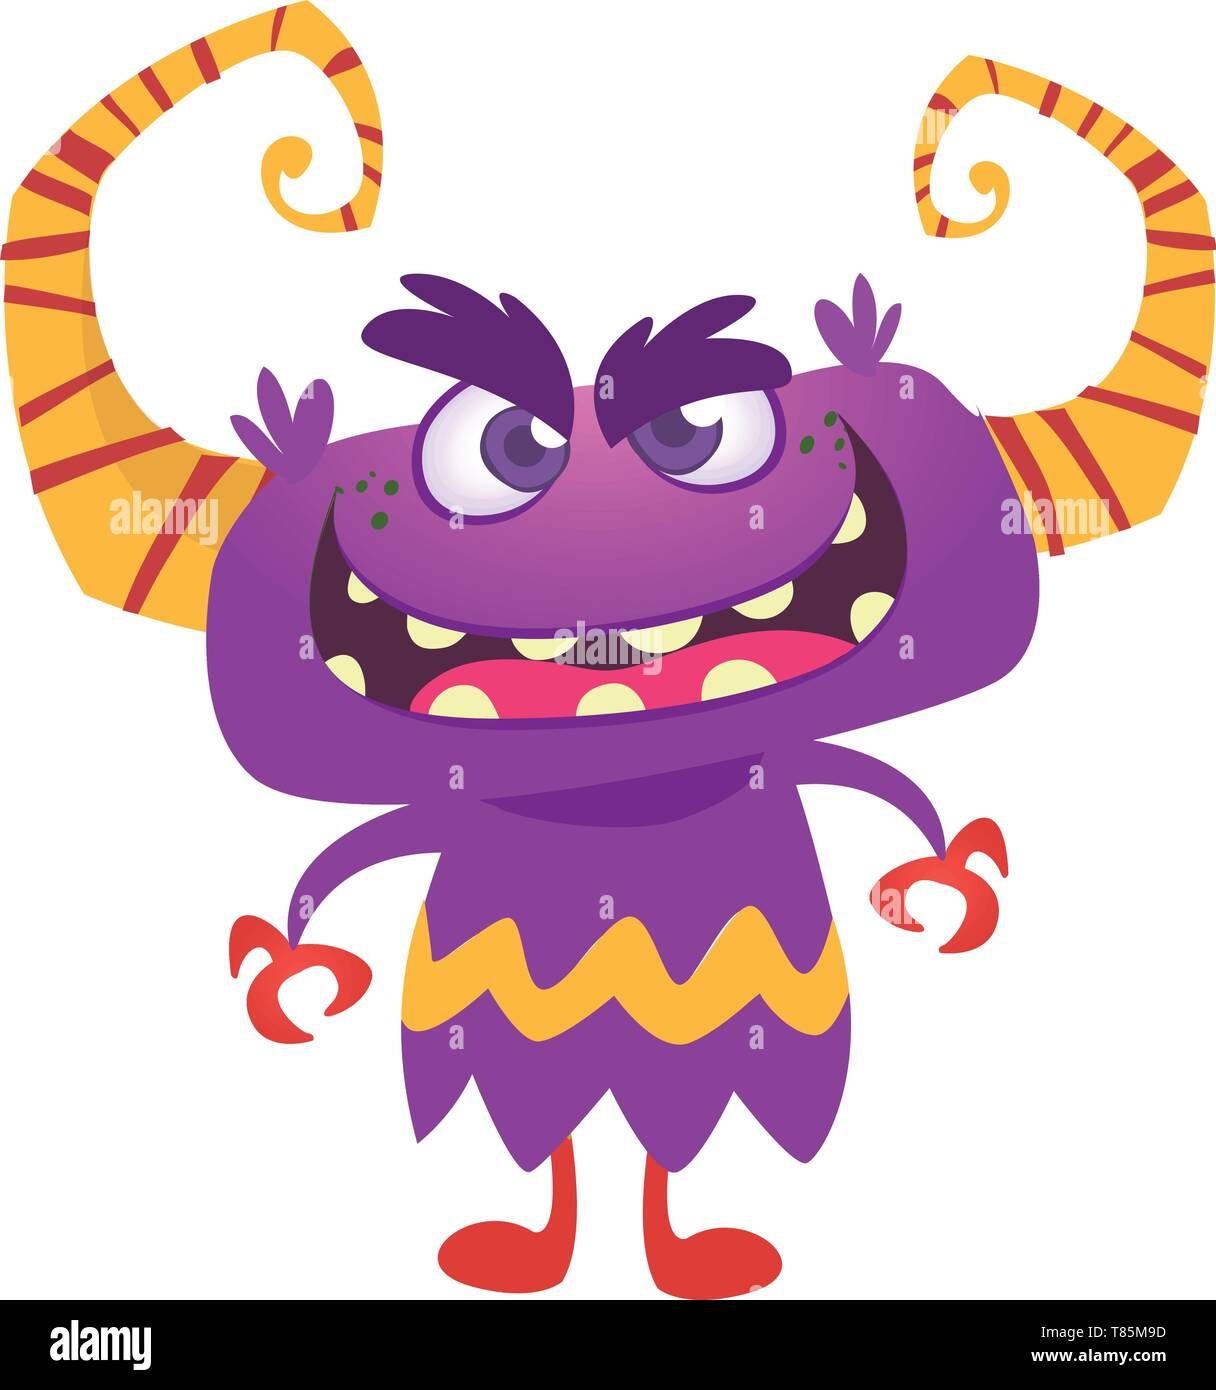 Angry cartoon monster with horns. Vector illustration - Stock Image